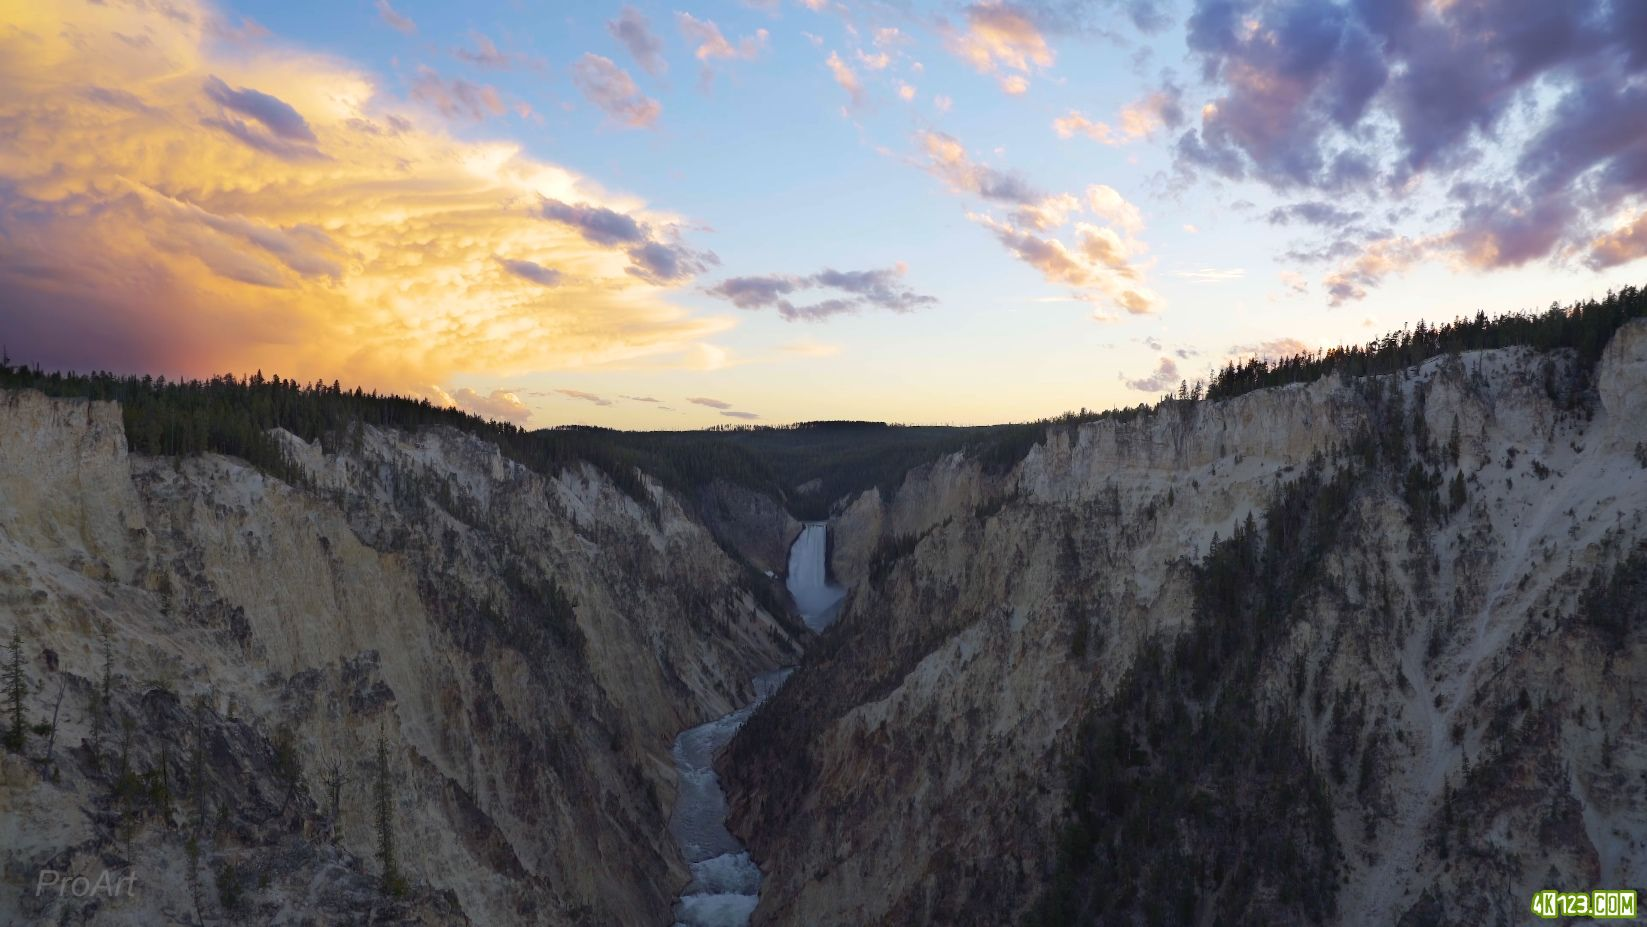 Yellowstone National Park - 4K (Ultra HD) Nature Documentary Film - Episode 2_М.jpg